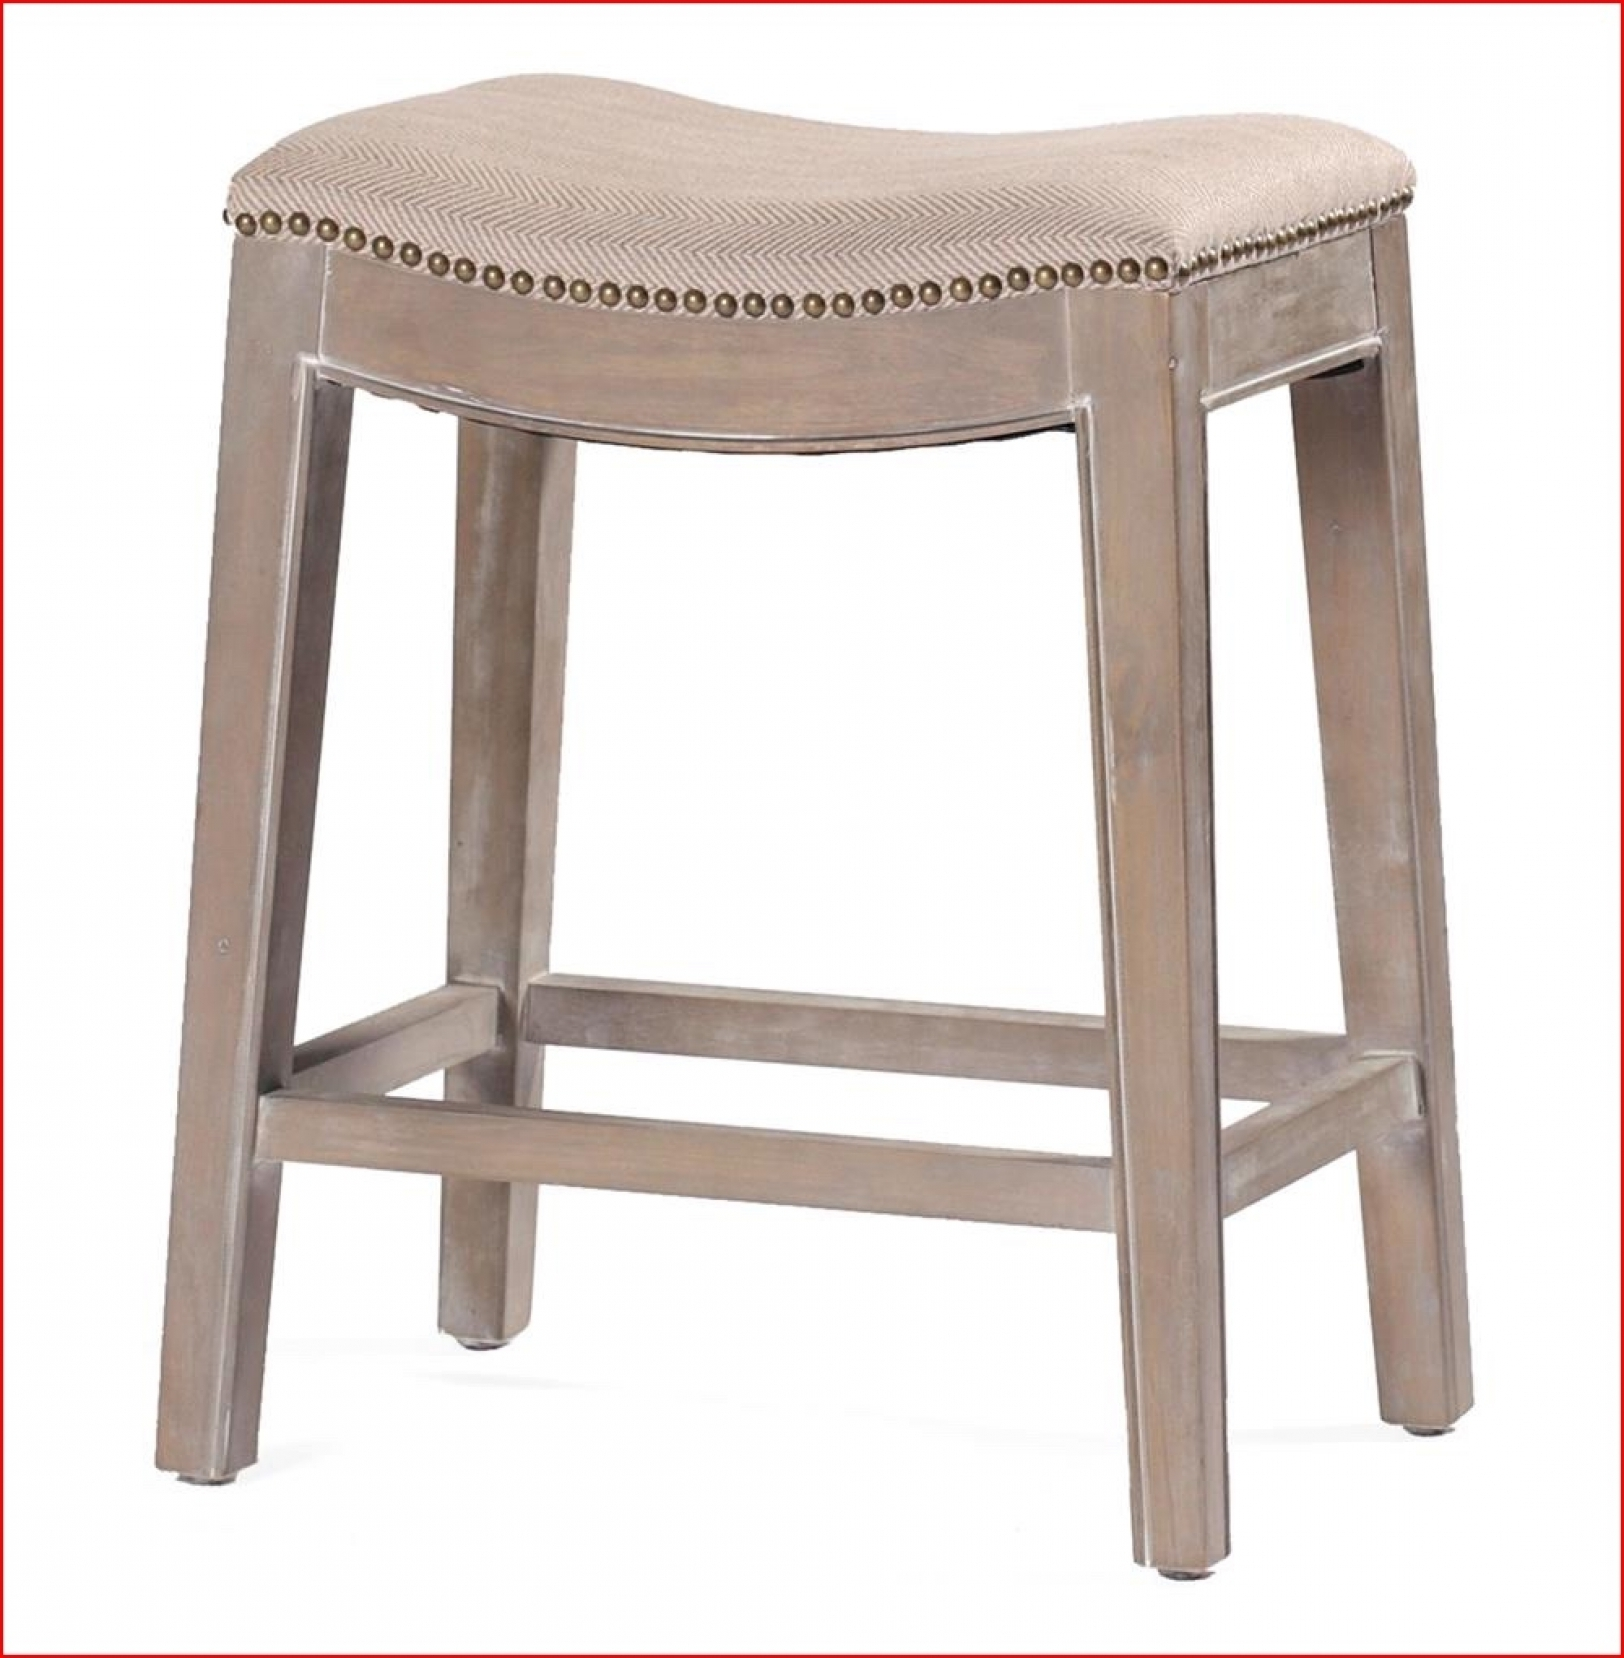 French Country Counter Stools Images That Looks Charming To Inside French Country Counter Stools Decor For Your Kitchen (Image 13 of 20)